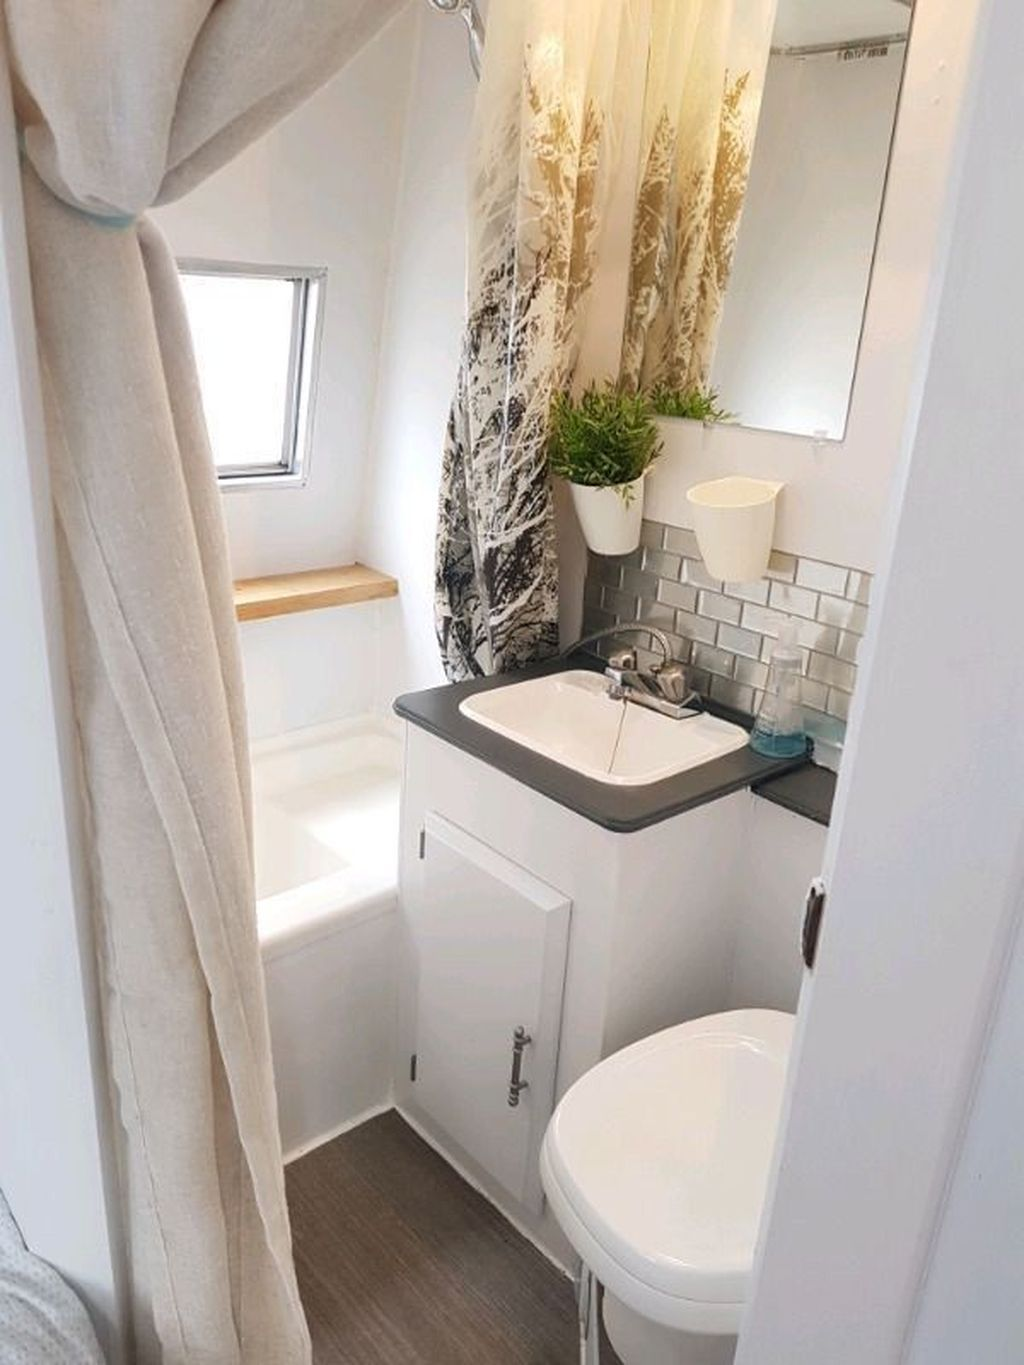 20 Fascinating Rv Remodel Ideas For Bathroom On A Budget